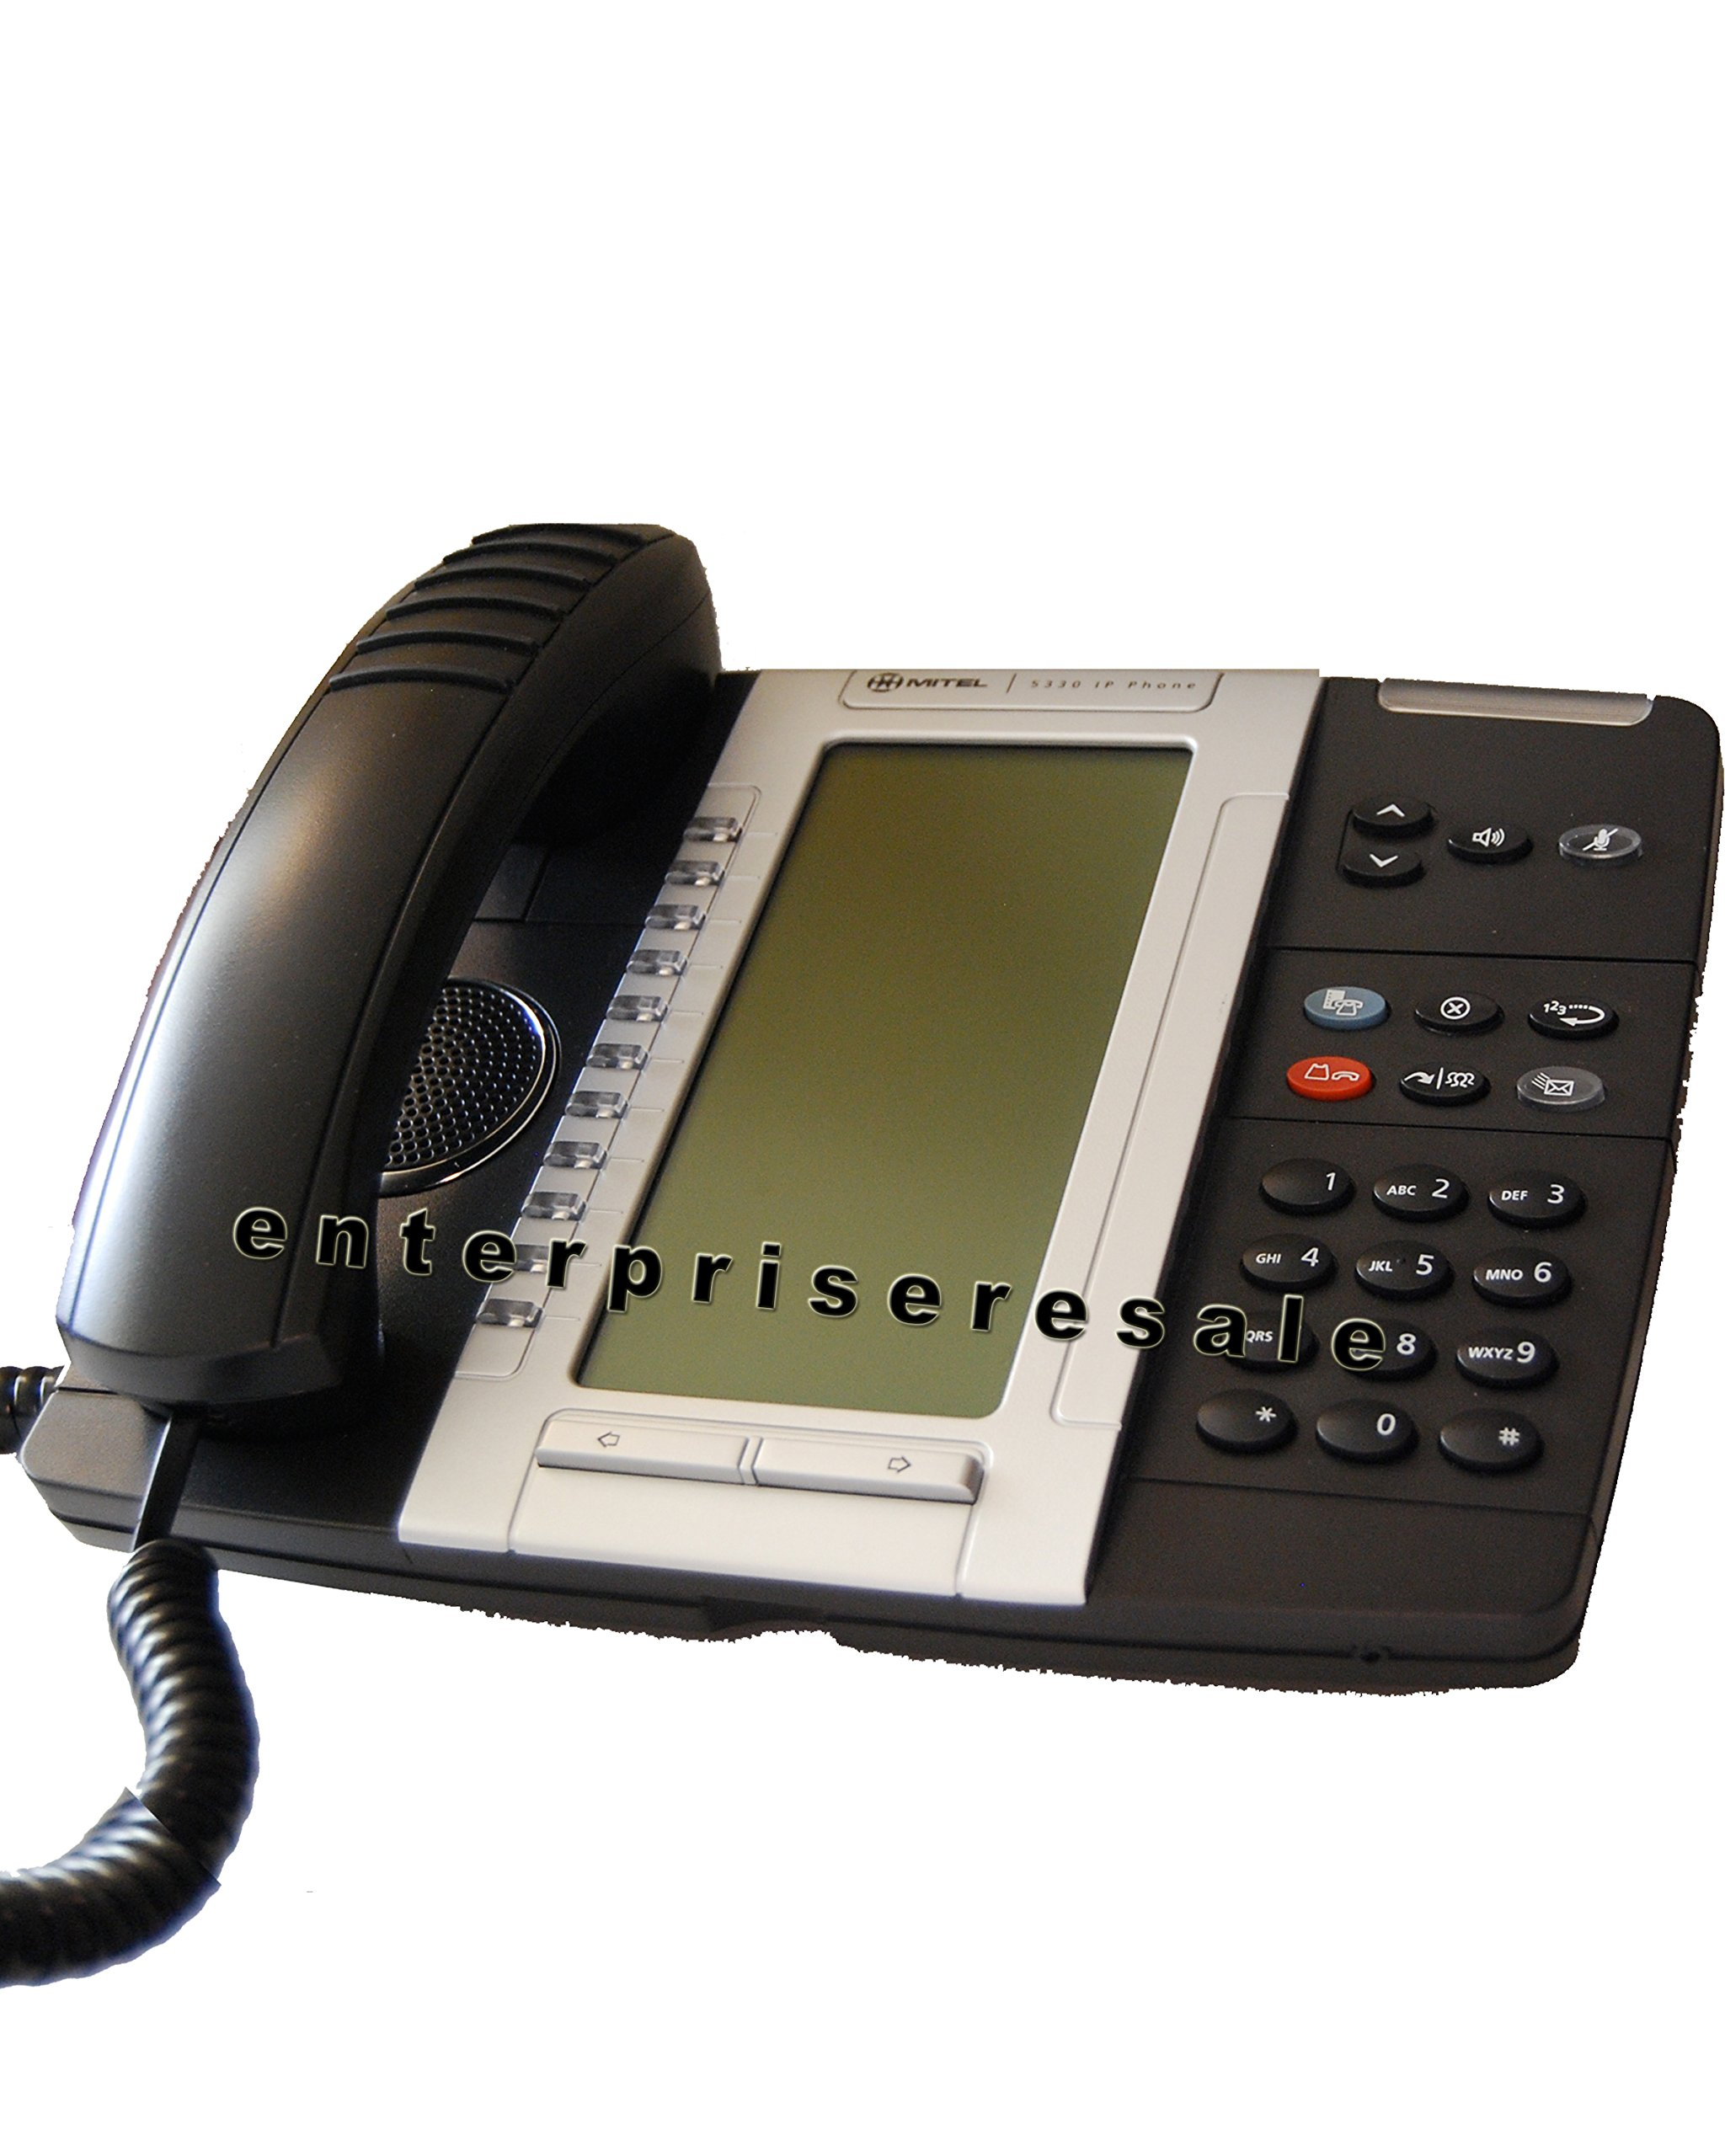 MITEL 5330 DUAL MODE VoIP BUSINESS PHONE WITH BACK LIT DISPLAY 50005804 1 YEAR WARRANTY (Renewed)